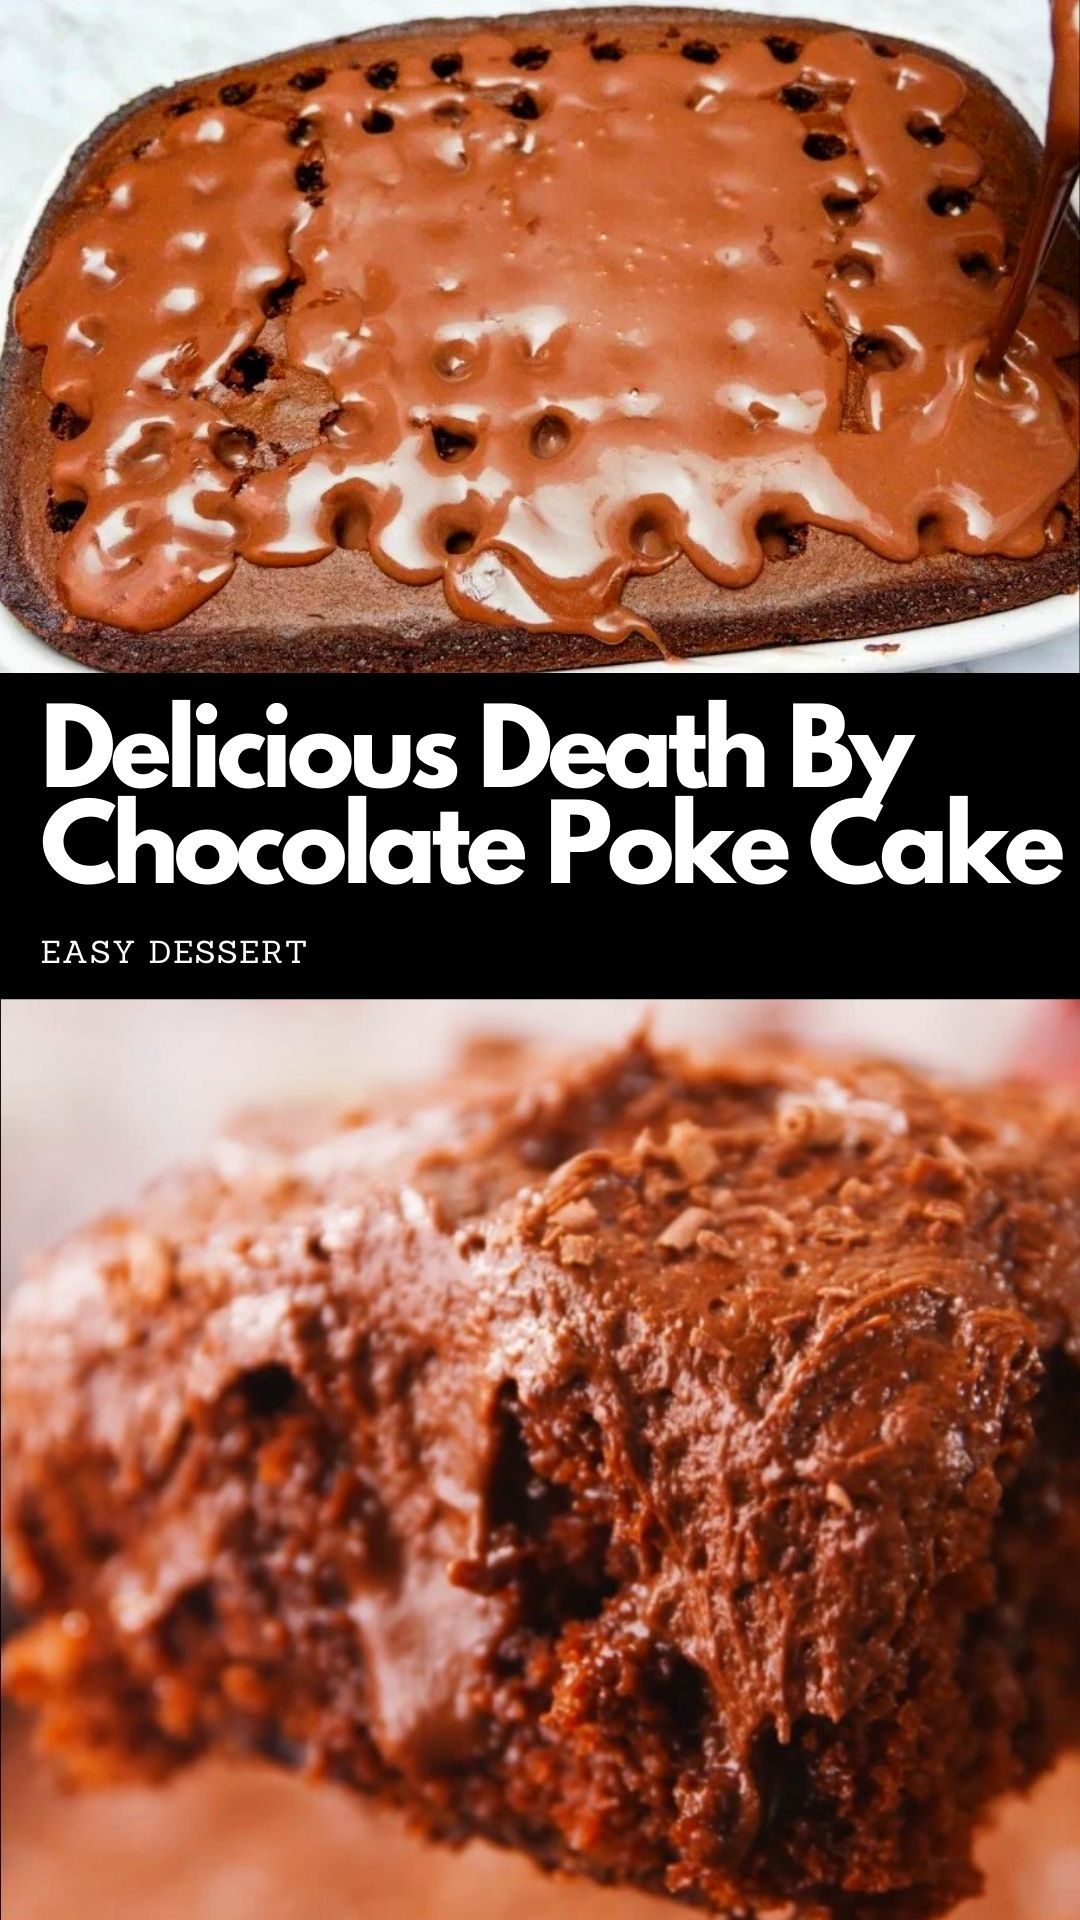 Delicious Death By Chocolate Poke Cake Recipe